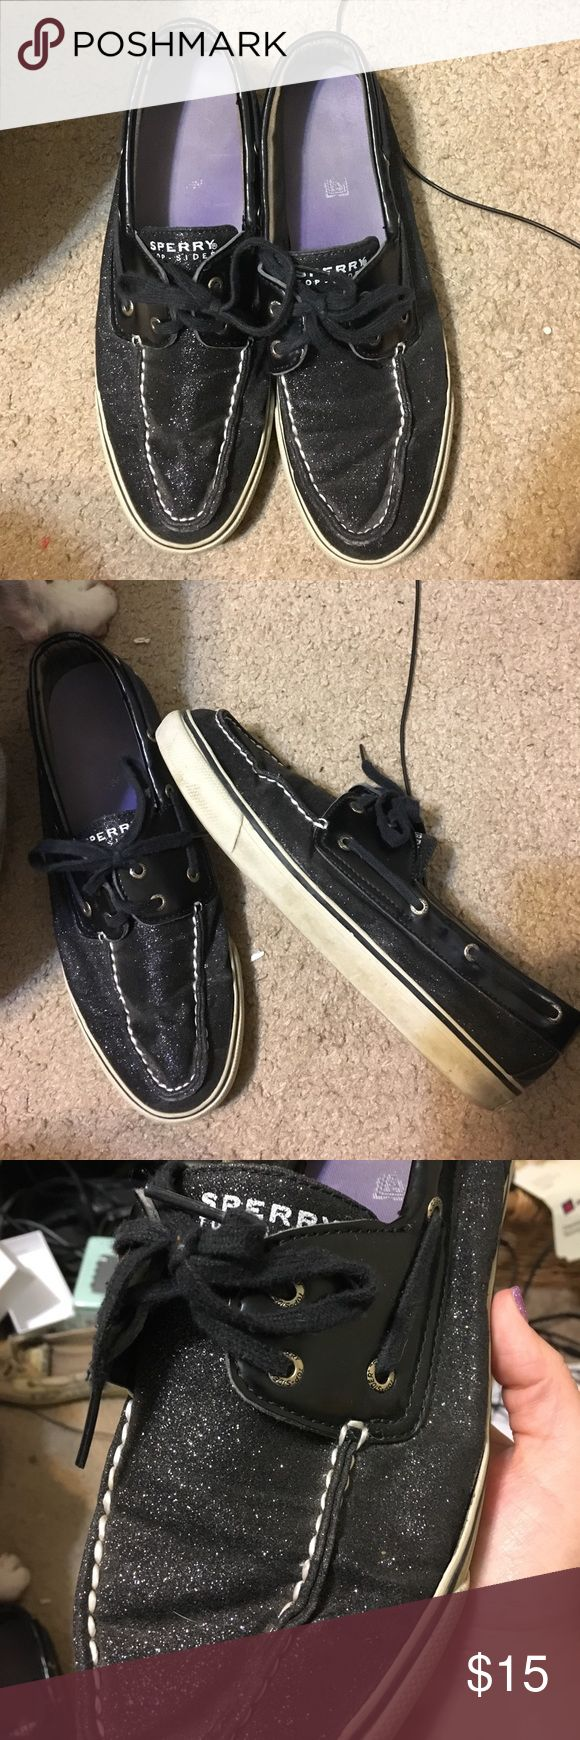 Sparkly black sperrys Gently used sparkly black sperrys size 10. With a little clean up on the bottom part these will be like new Sperry Shoes Sneakers